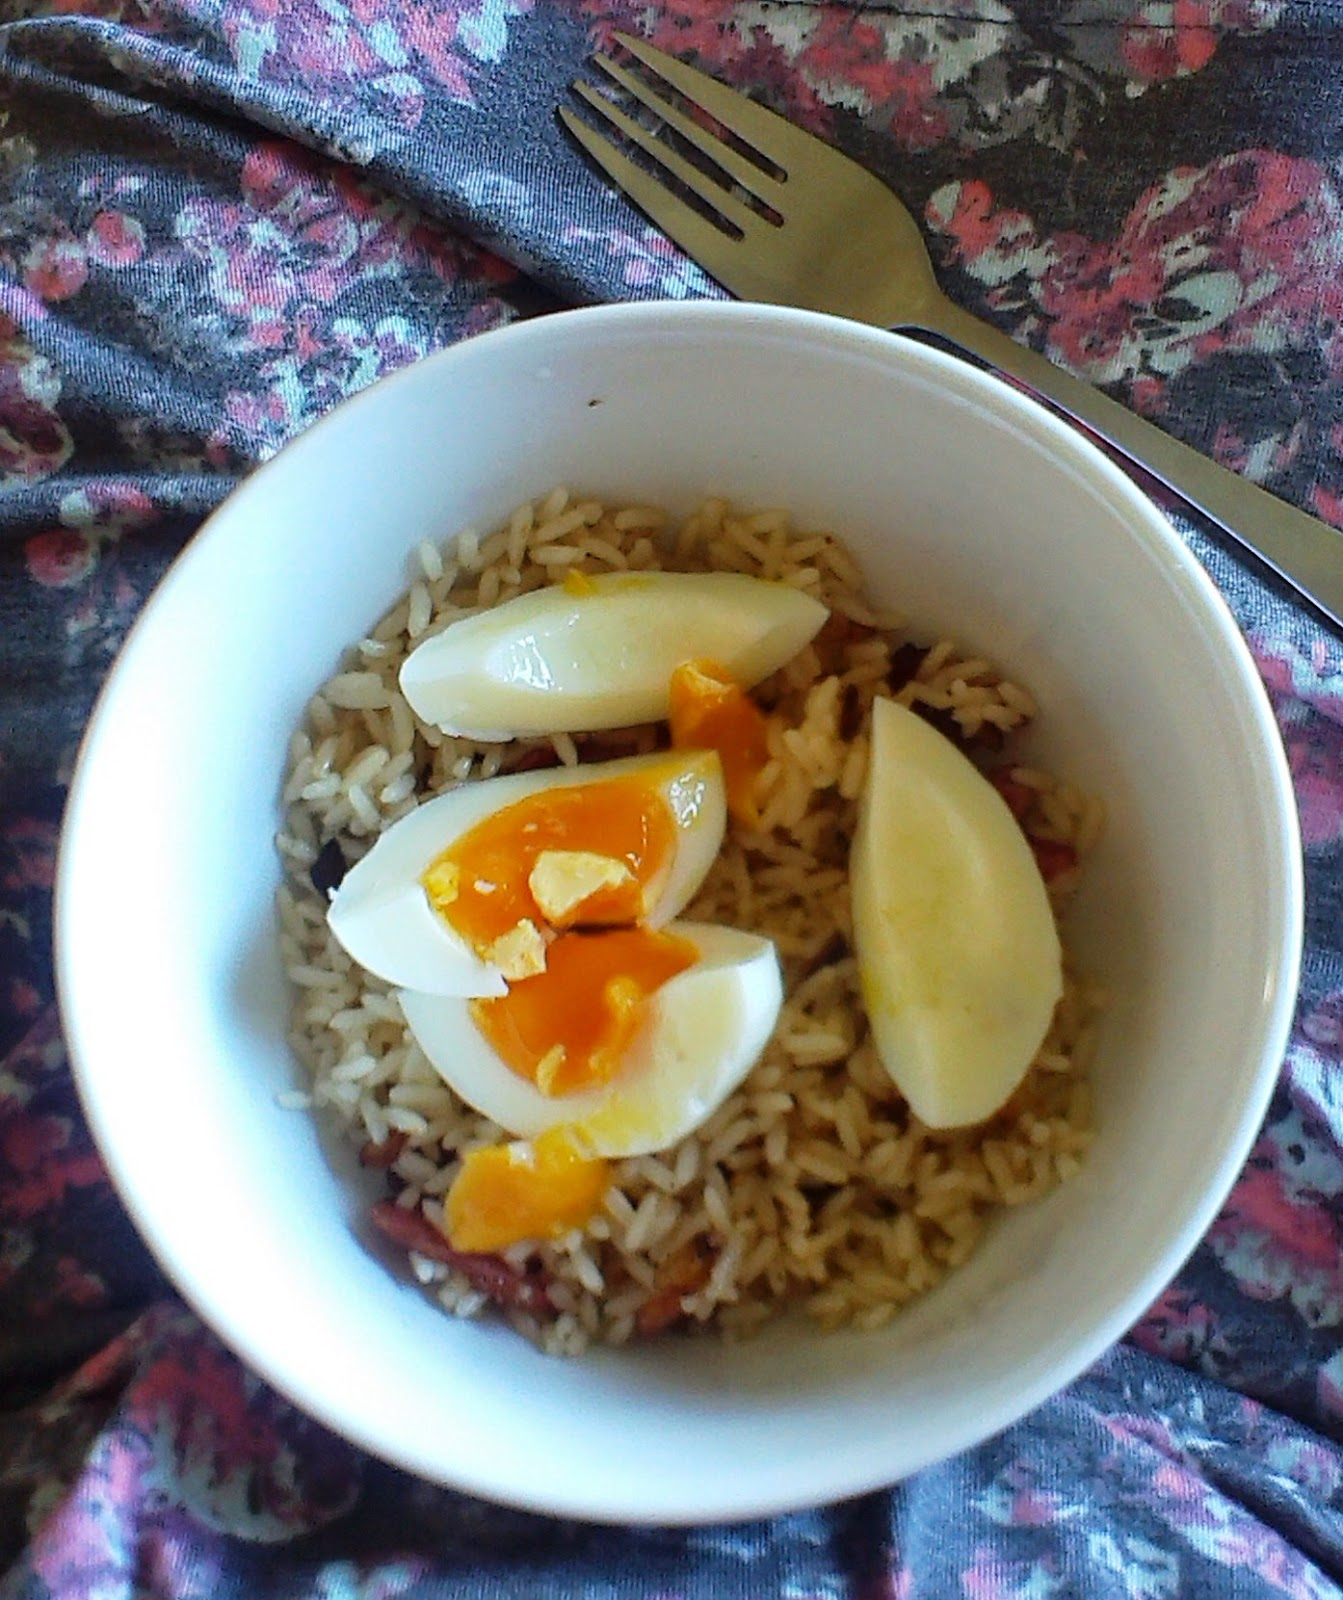 Bacon and Eggs Kedgeree-style